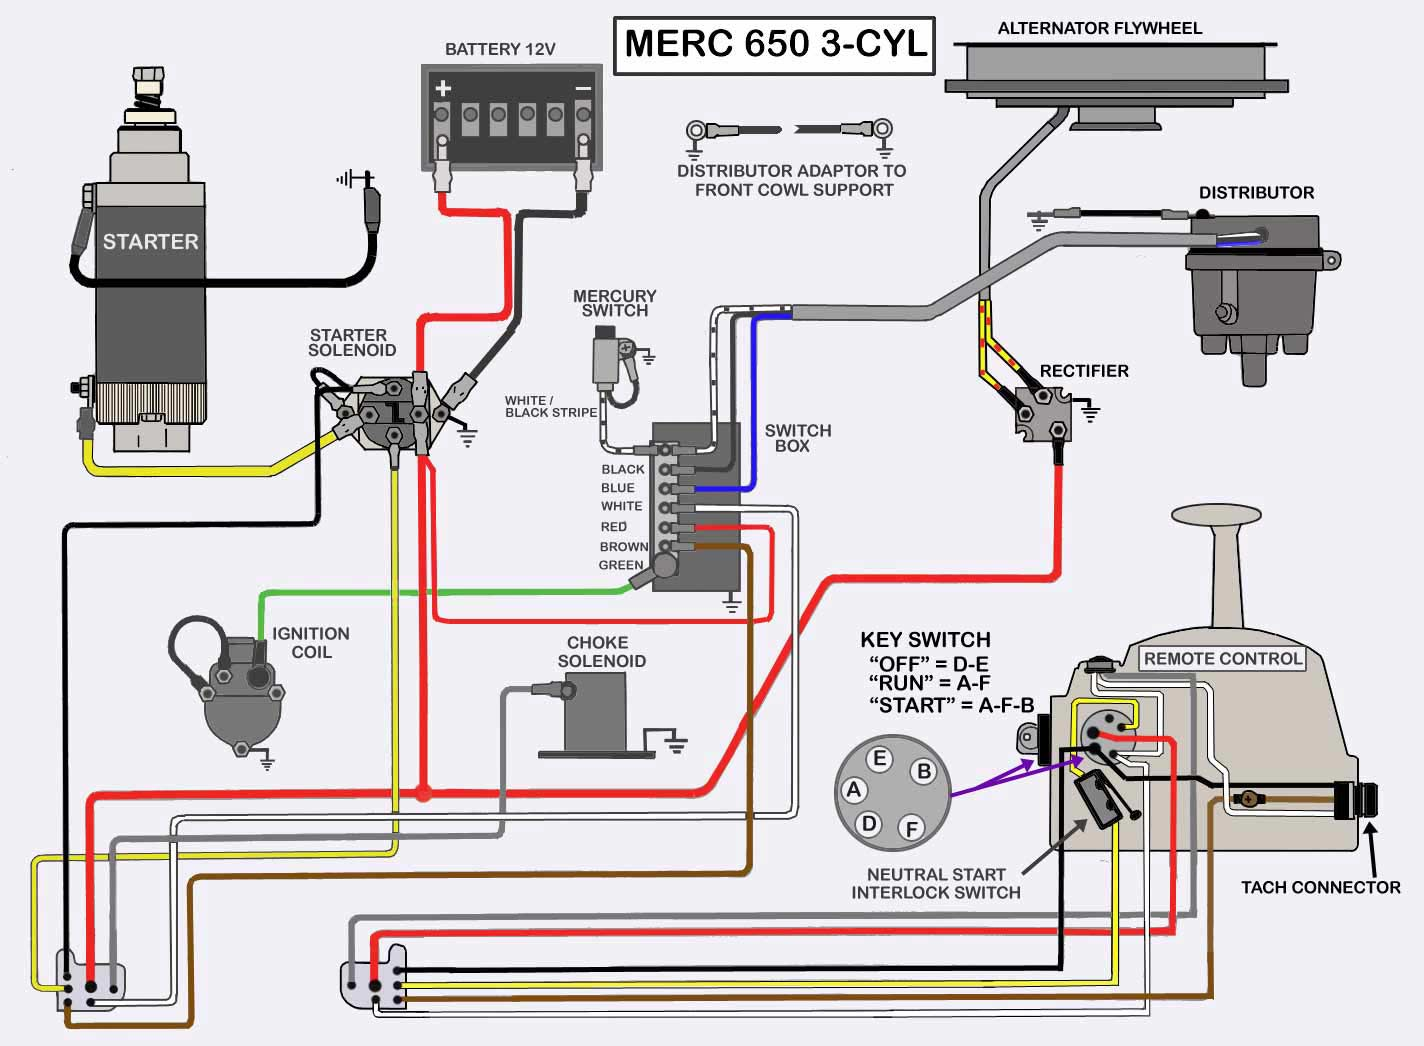 mercury 90 wiring diagram wiring diagram third levelmercury outboard wiring diagram schematic simple wiring diagram mercury ignition wiring diagram mercury 90 wiring diagram